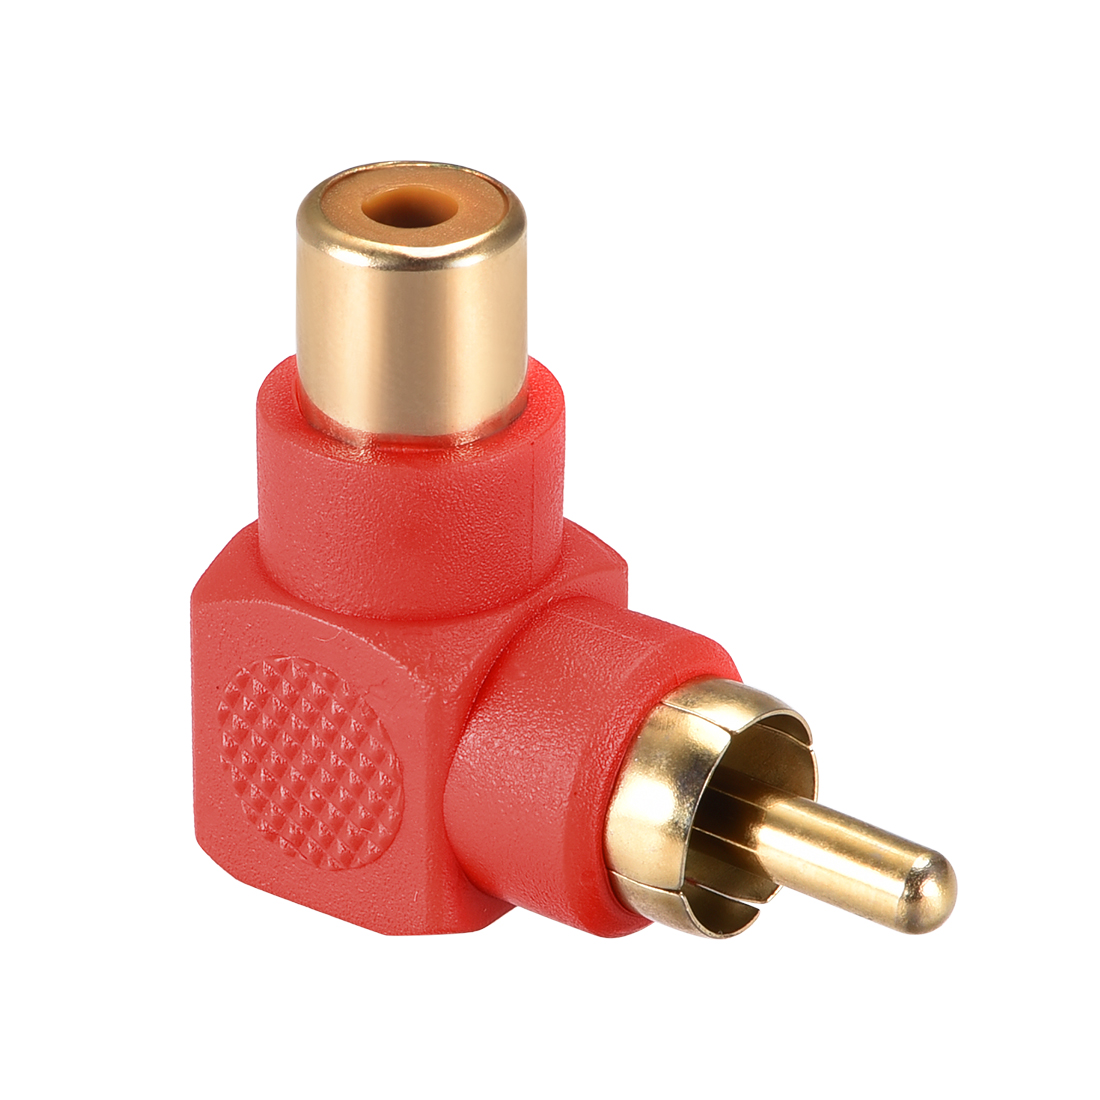 RCA Male to Female 90 Degree Connector Stereo Audio Video Cable Adapter Red